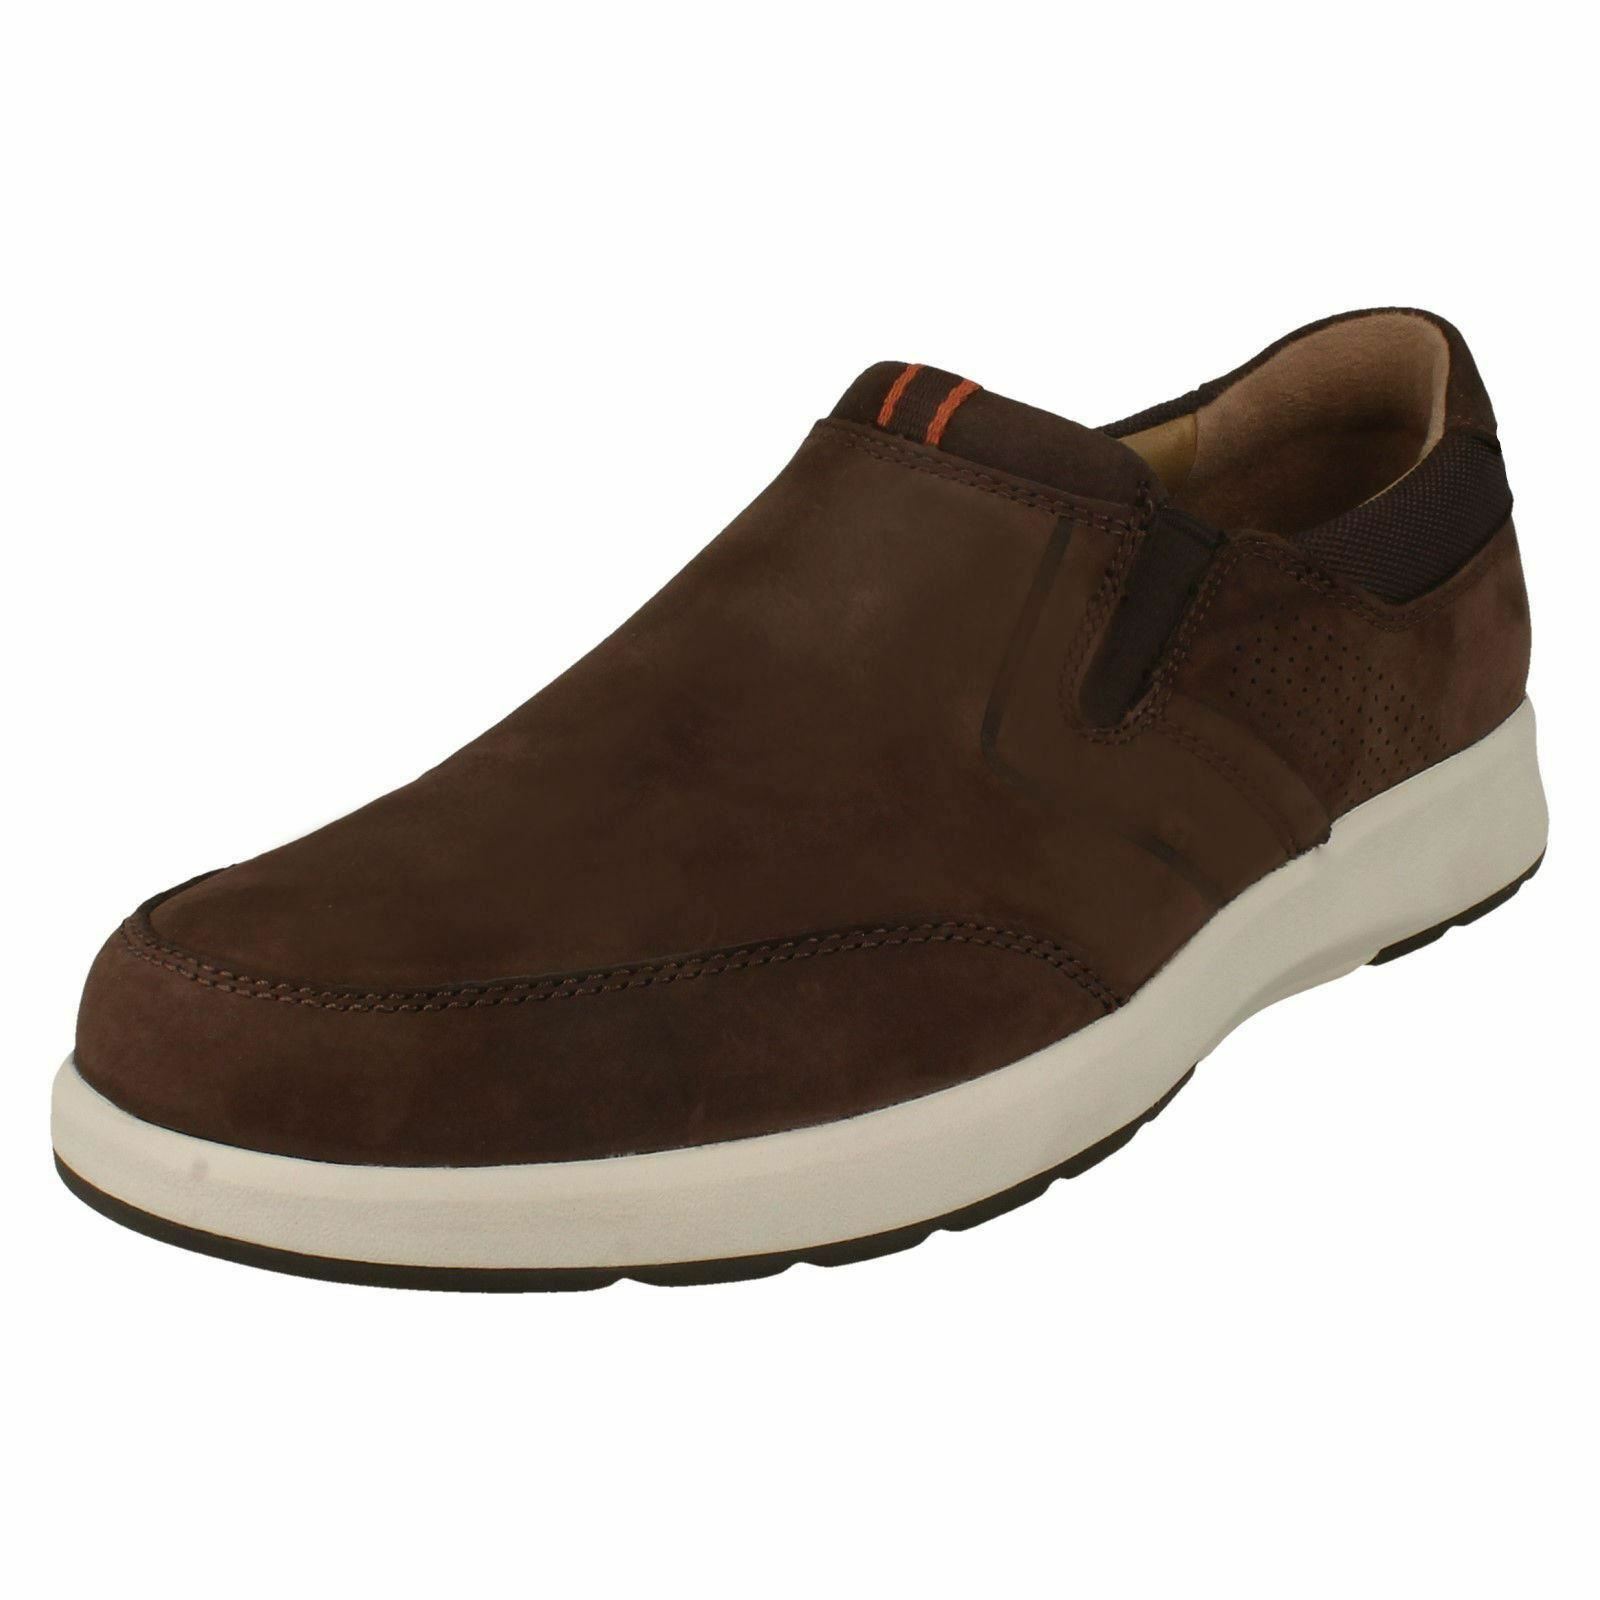 Mens Clarks Unstructured Un Trail Step Nubuck Casual Slip On shoes